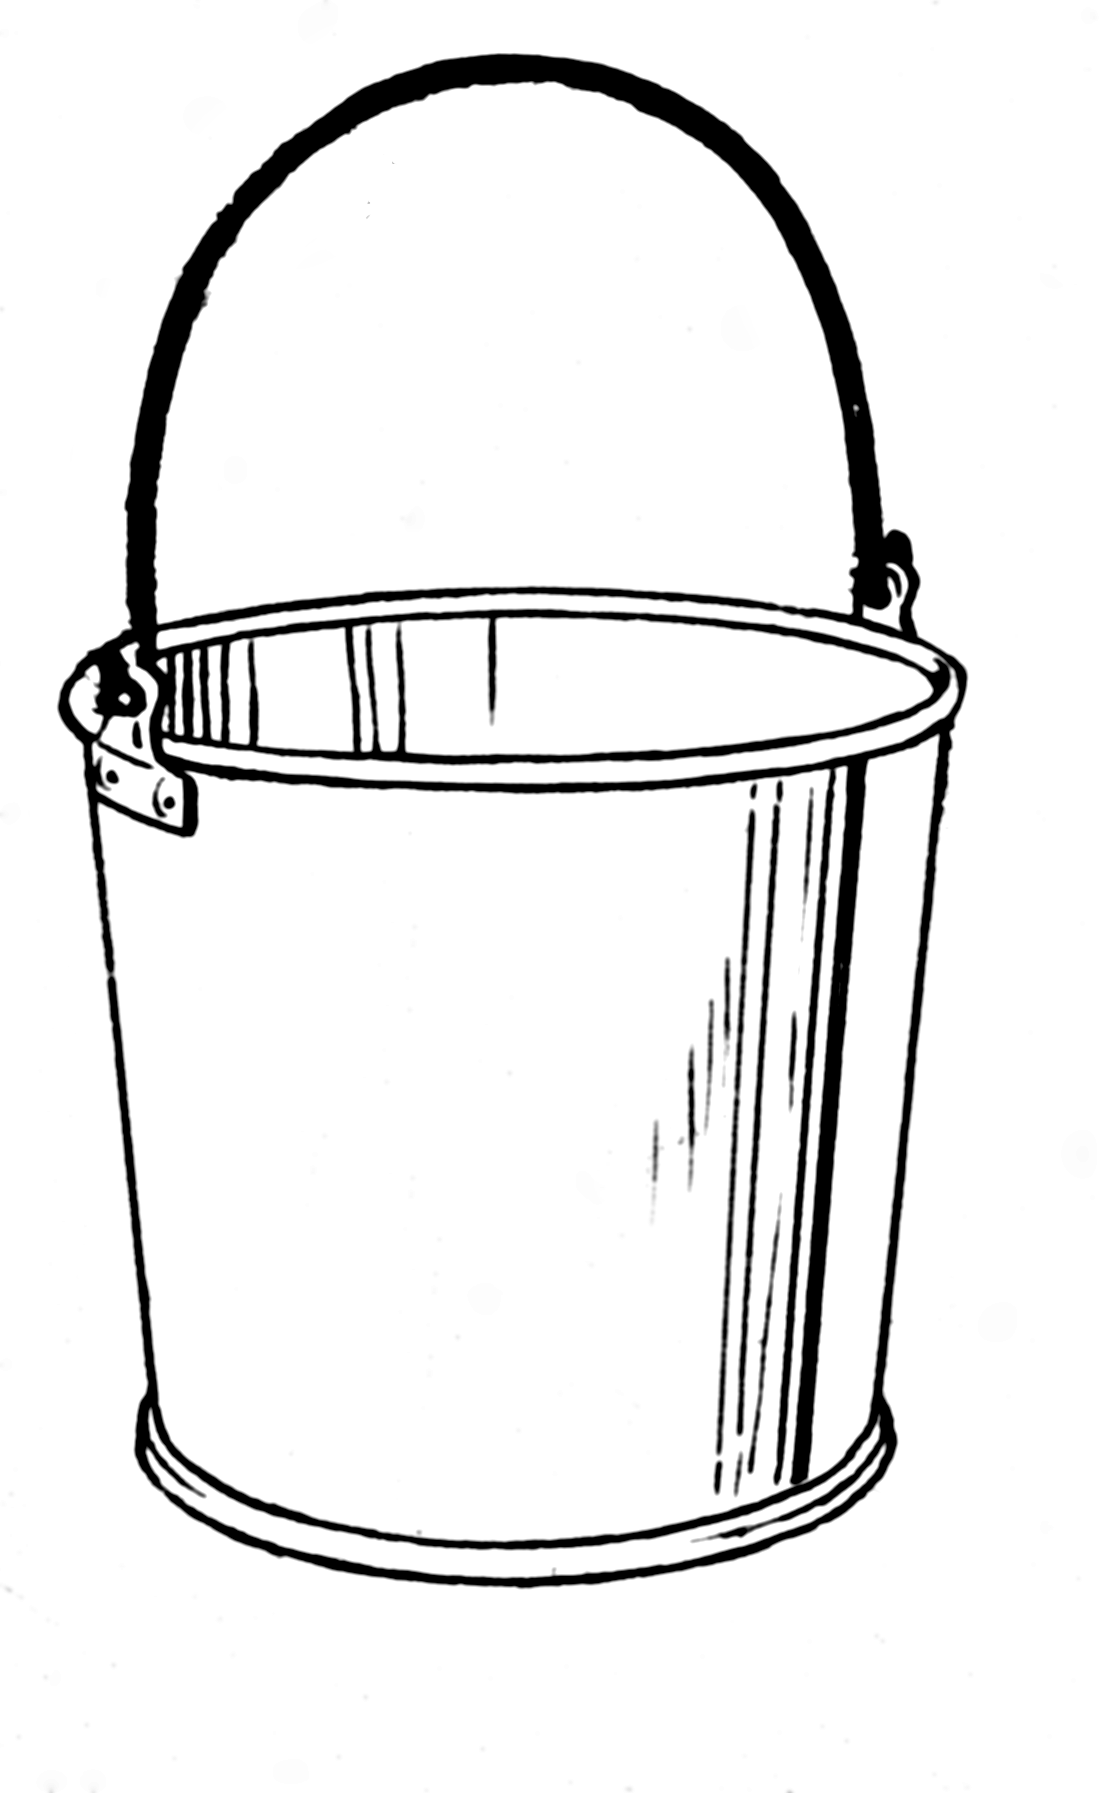 Pin Clip Art Of A Bucket Or Pail On Pinterest Bucket Drawing Bucket Paint Buckets